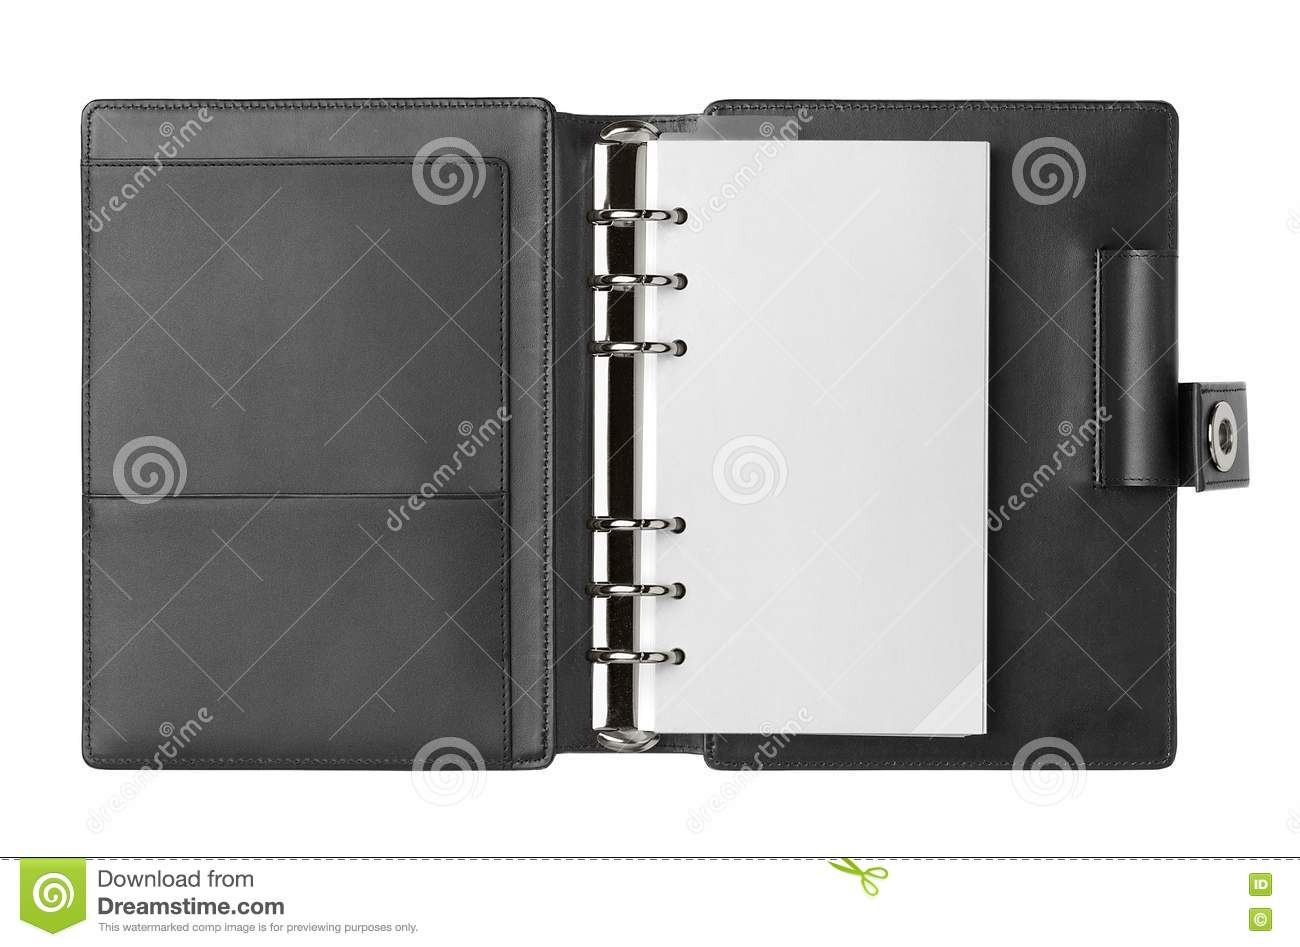 Royalty free stock photos organizer note book image for Construction organizer notebook